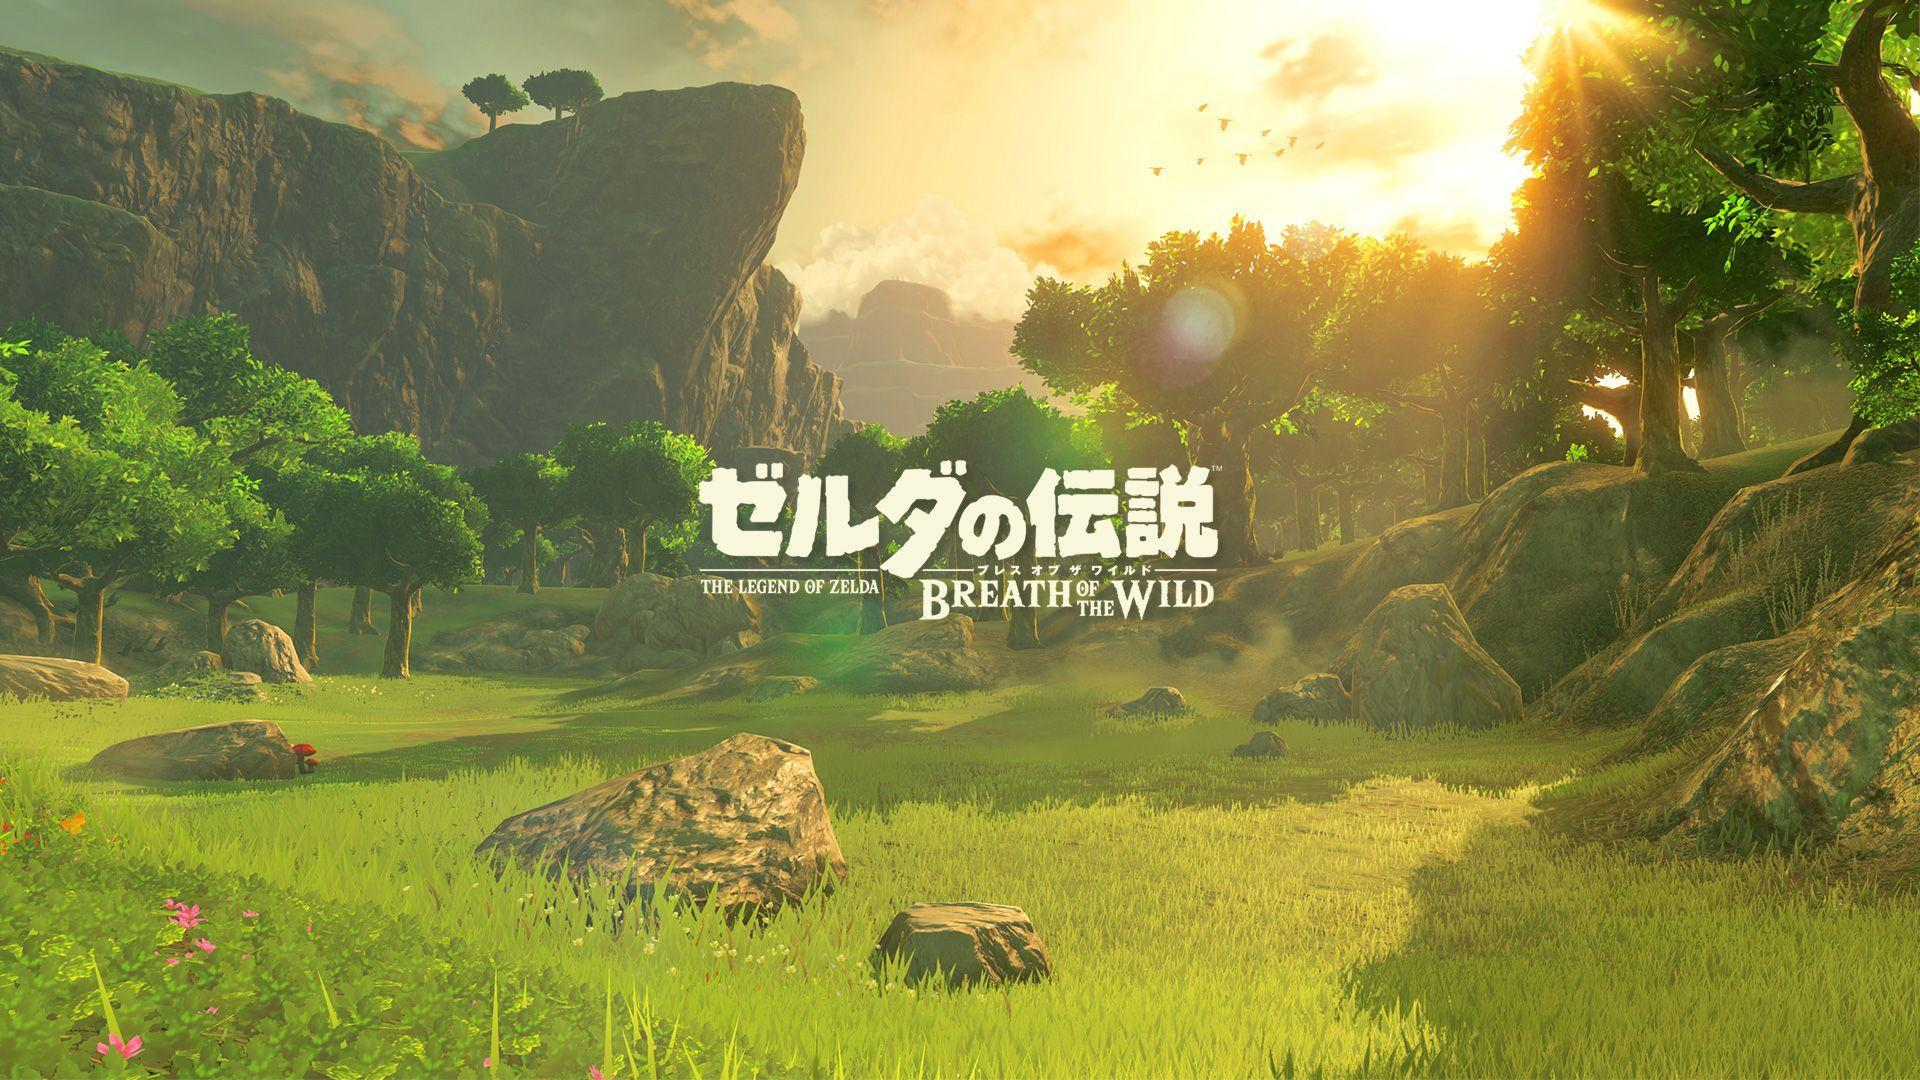 Breath Of The Wild Wallpapers - Wallpaper Cave